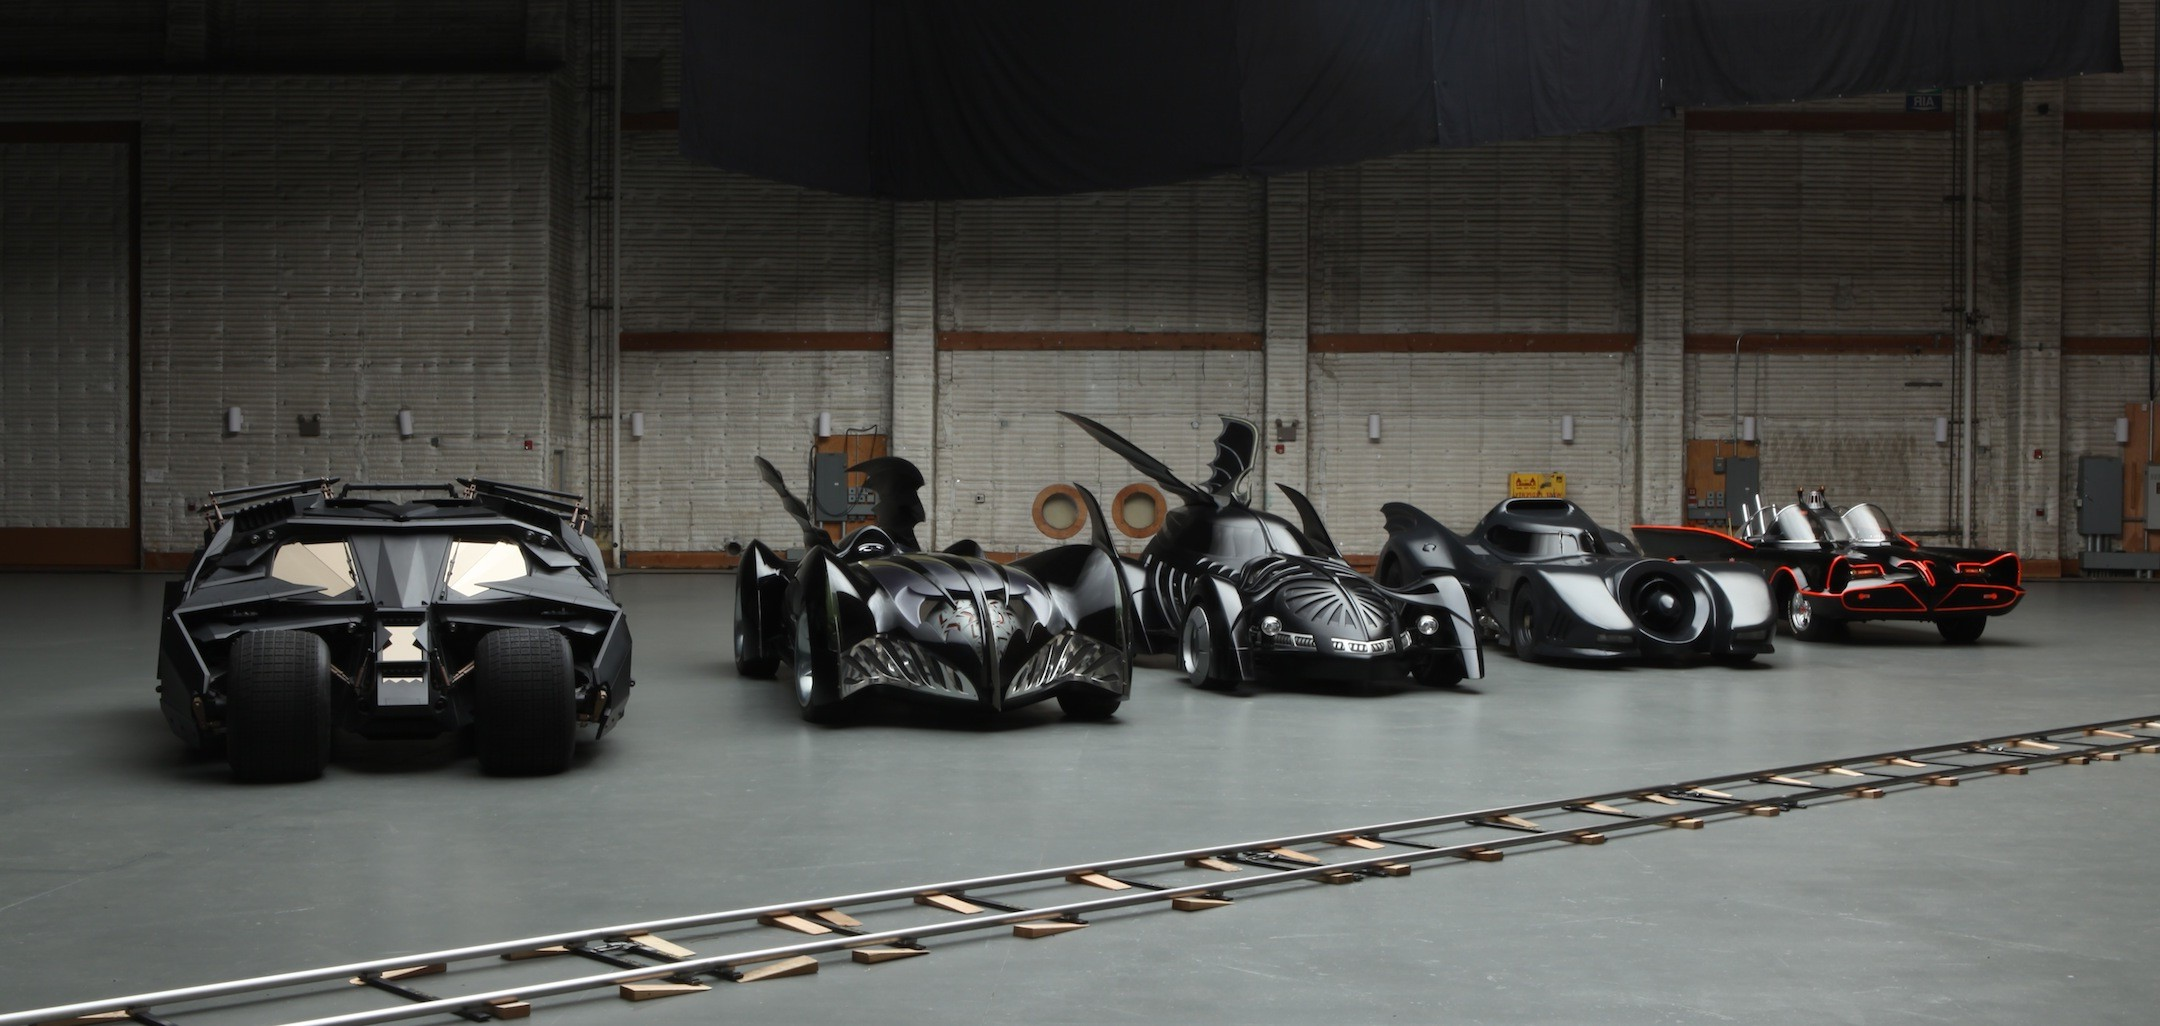 Super Car 5760x1080 Wallpaper Car Batmobile Batman Dc Comics Wallpapers Hd Desktop